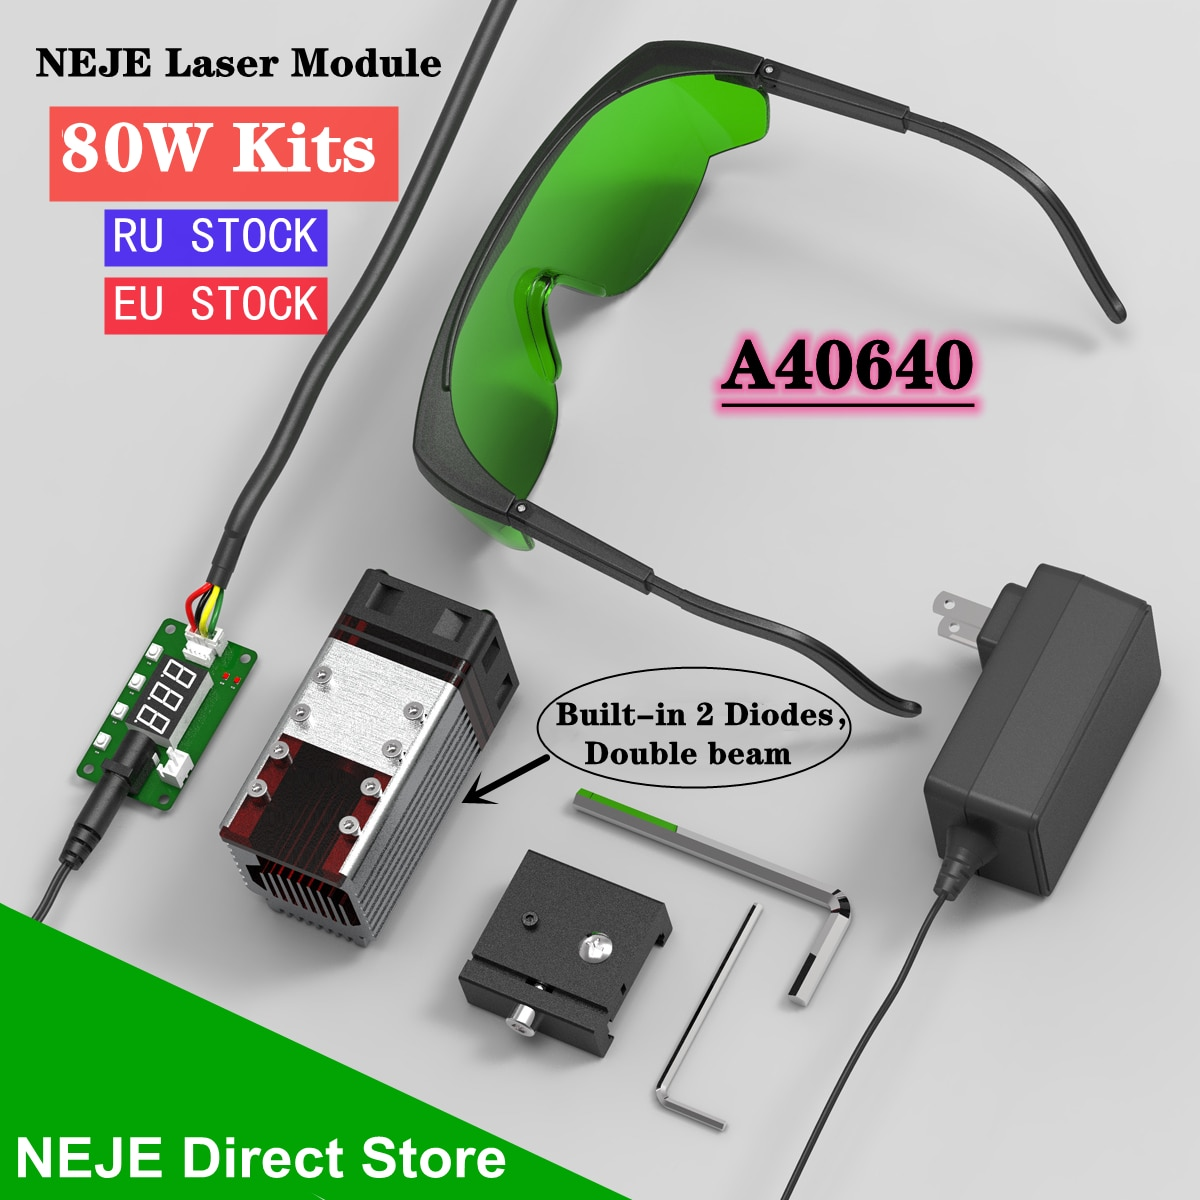 NEJE 80W A40640 Laser Module Kit With 450nm Wavelength TTL Module Set for CNC Laser Cutting Machine Engraver Wood Cutting Tool